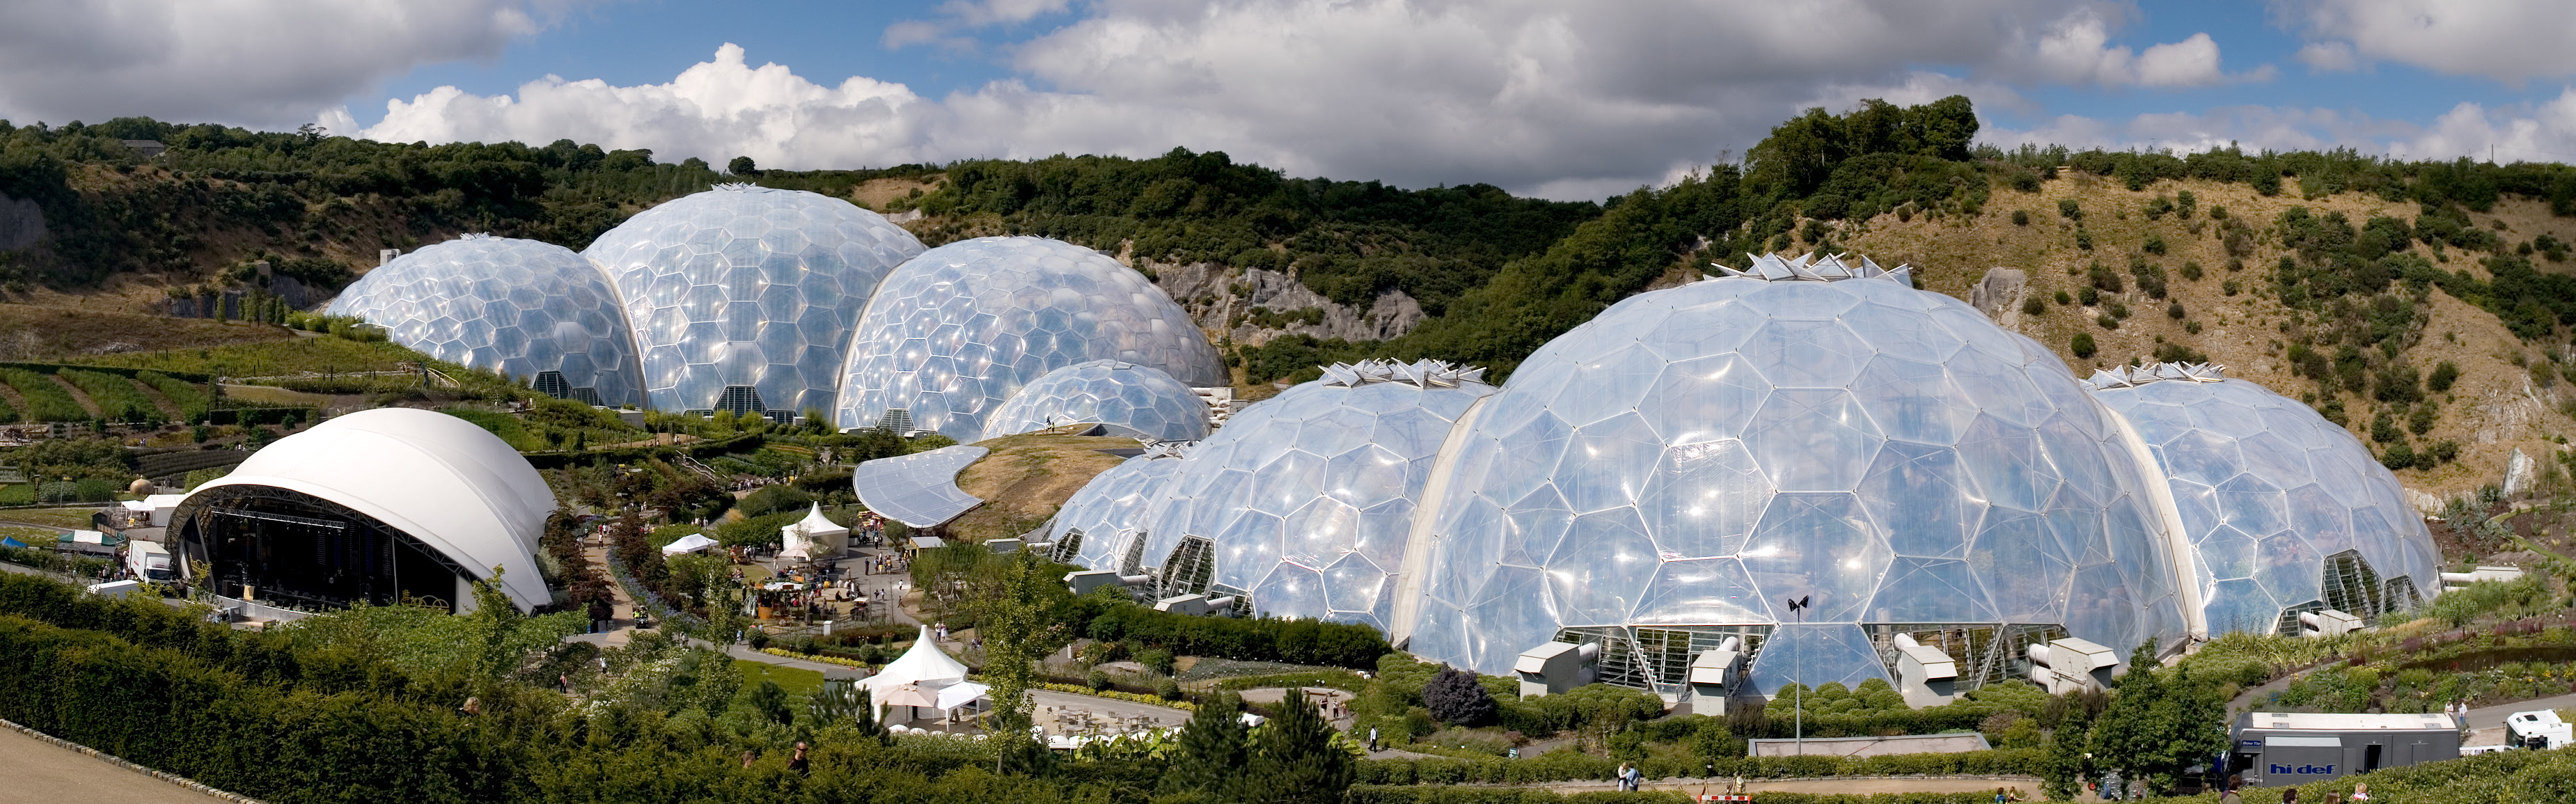 Geodesic domes of the Eden Project in United Kingdom